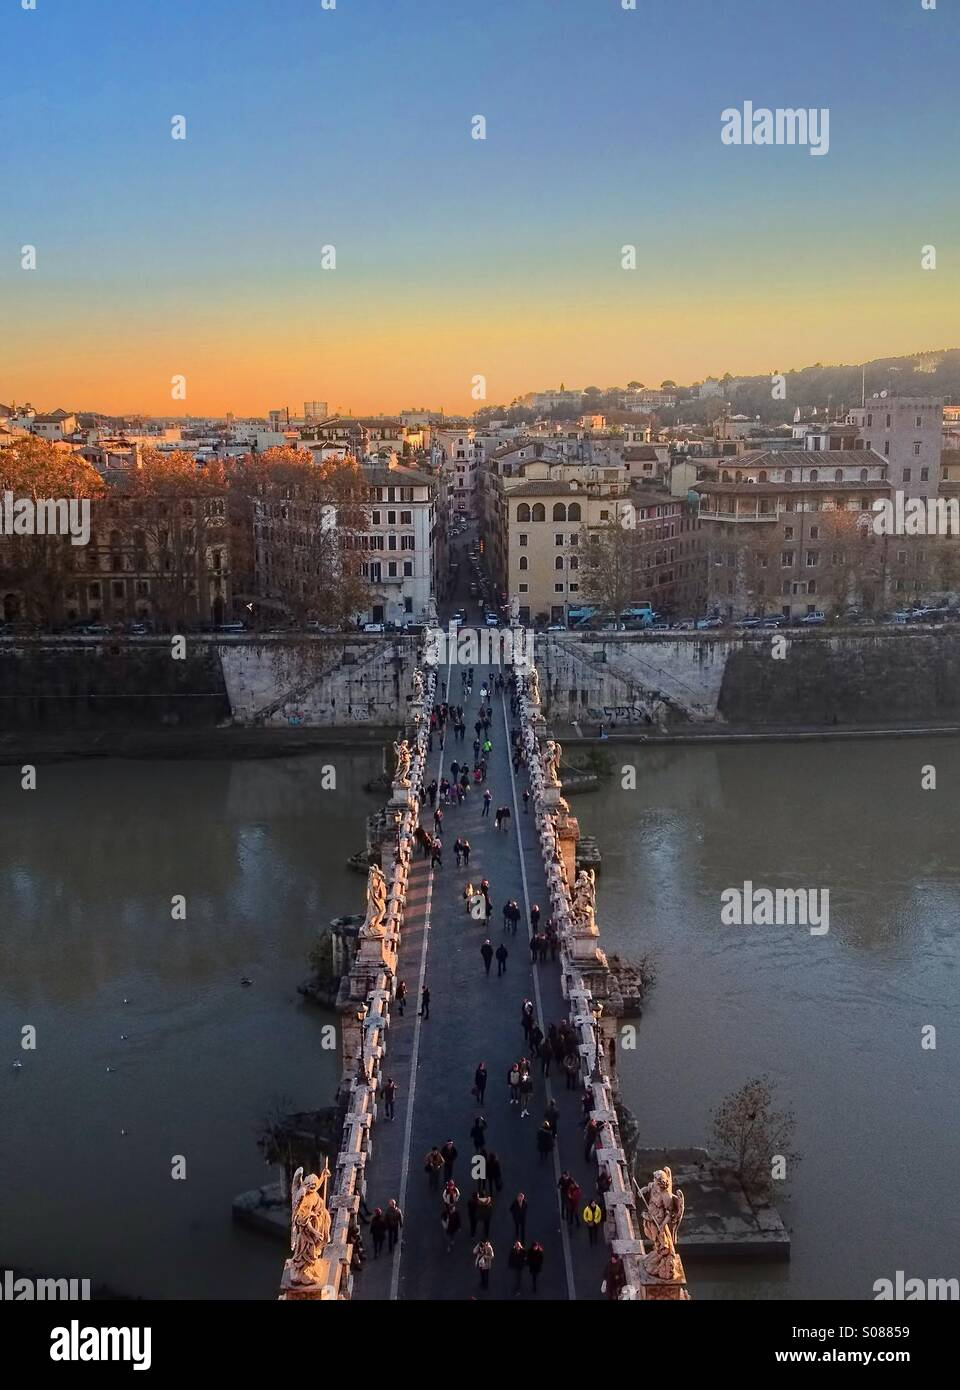 Pont Sant'Angelo, Rome Photo Stock